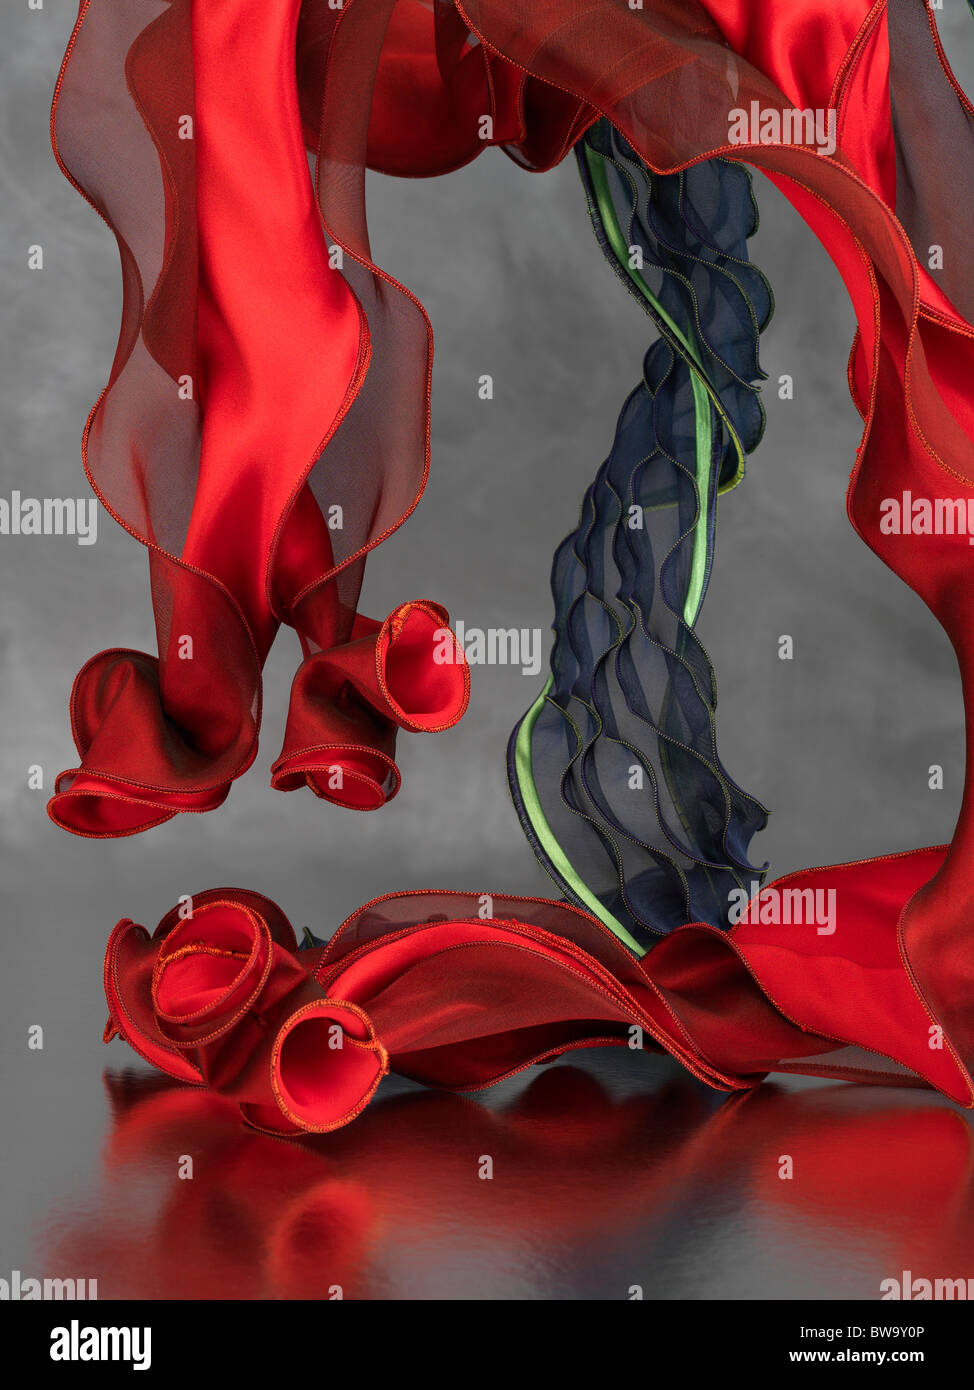 Two contemporary silk scarves on a grey background - Stock Image